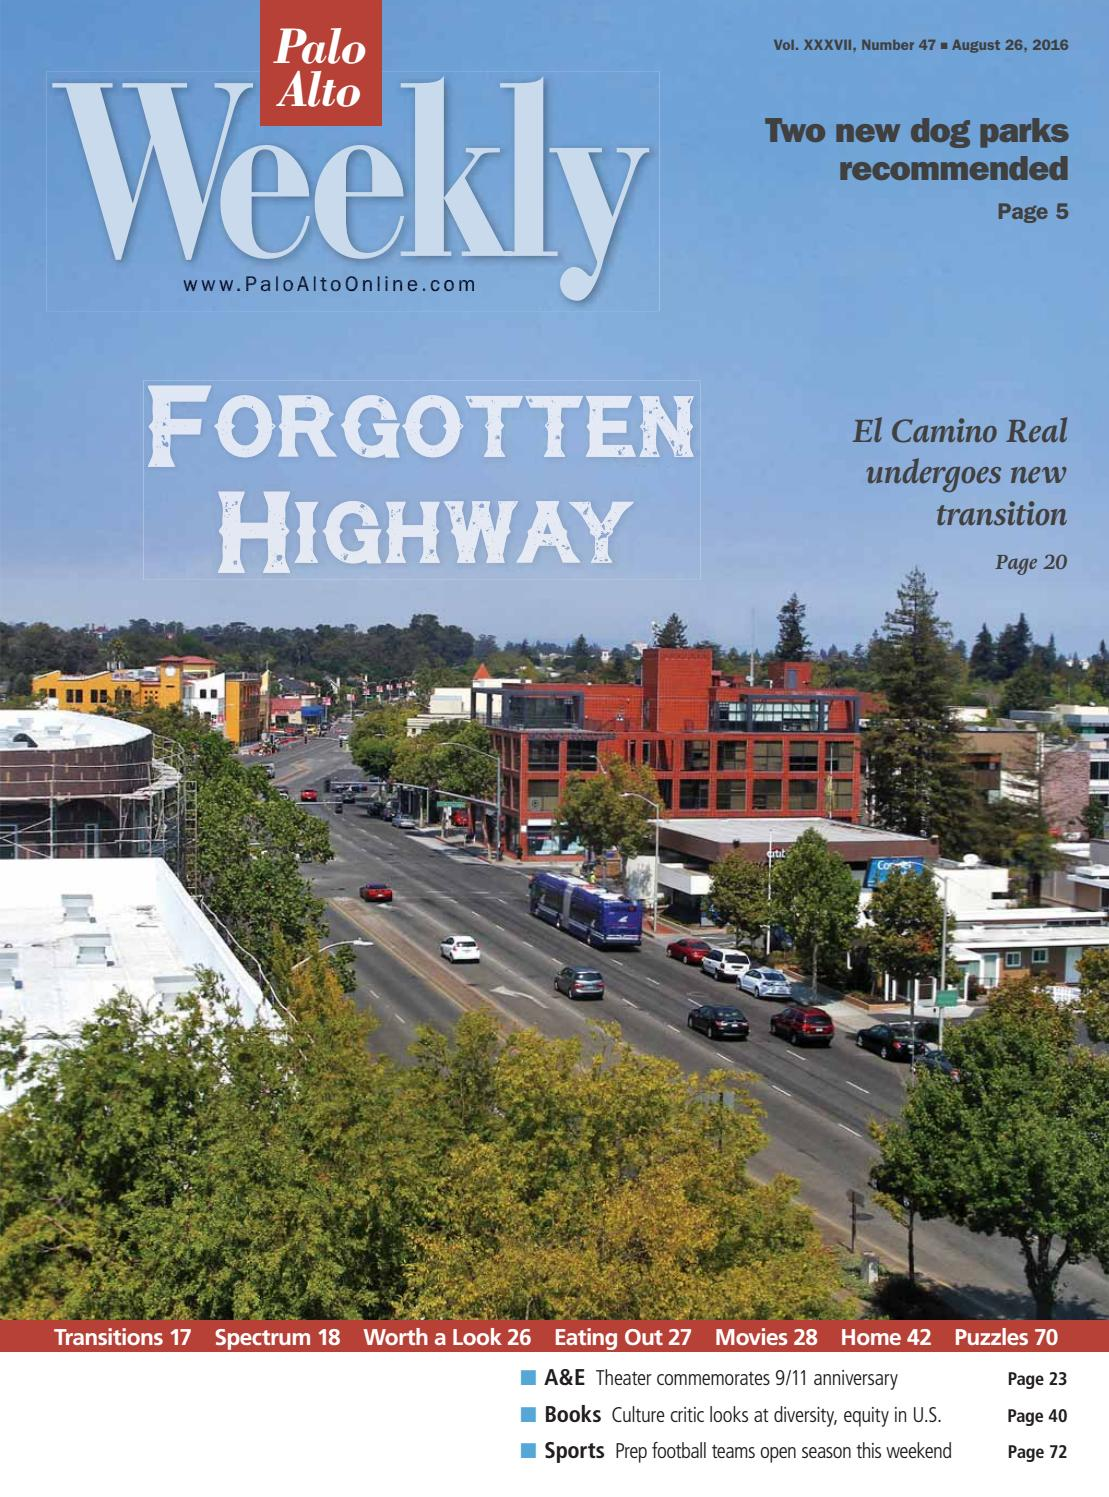 Palo alto weekly august 26, 2016 by palo alto weekly   issuu